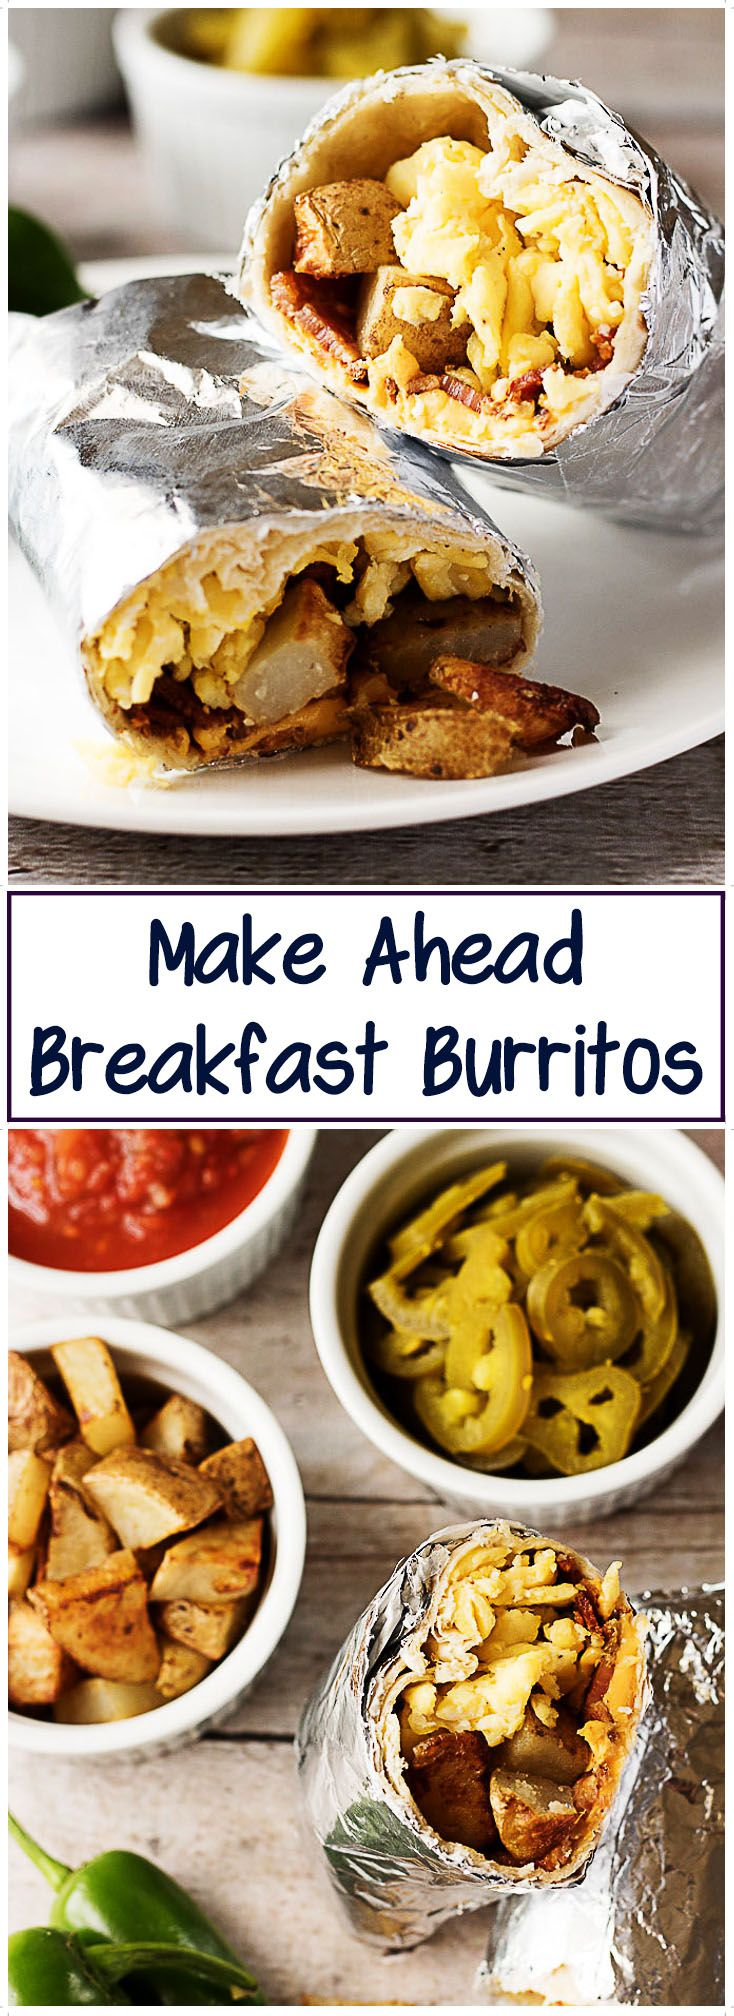 A hearty and filling make ahead breakfast burrito recipe with bacon, eggs, potatoes, and cheese wrapped in a warm tortilla. via @berlyskitchen